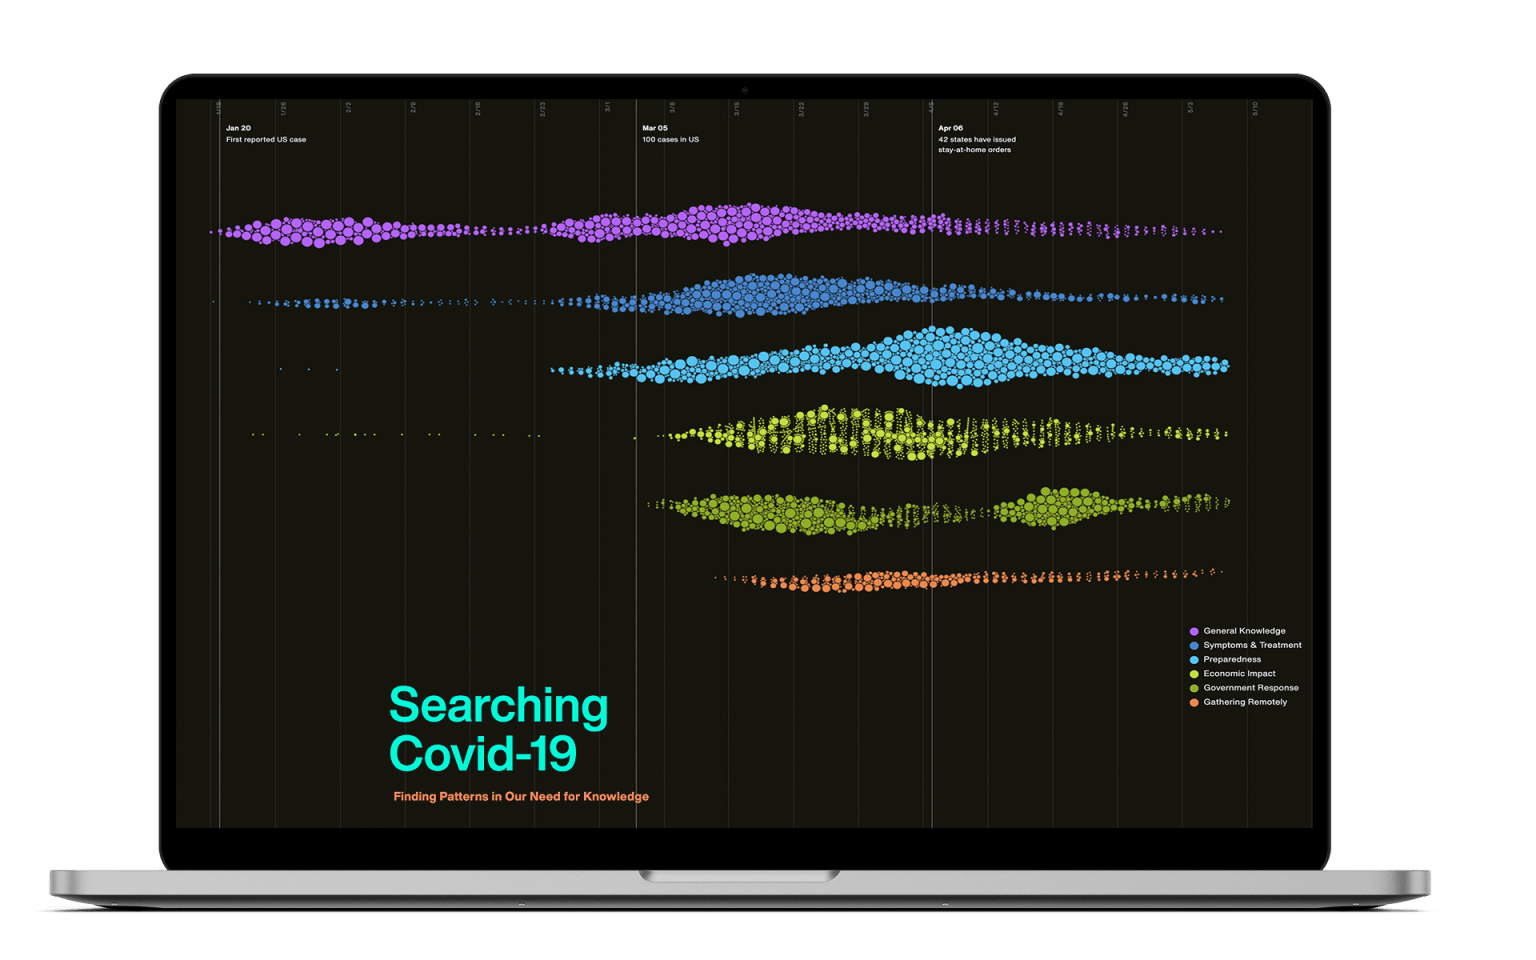 Searching Covid-19